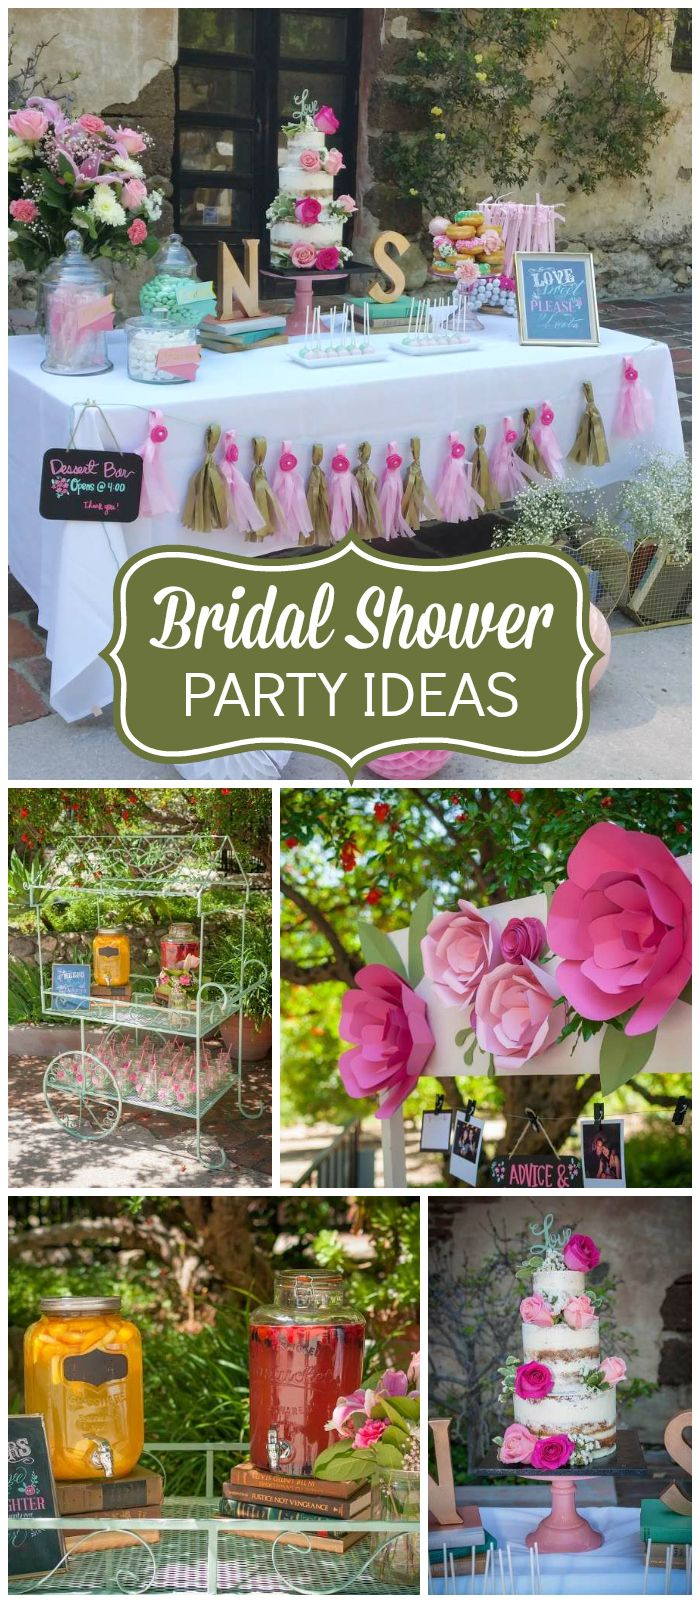 Once upon a time and happily ever after is this beautiful bridal shower's theme! See more party ideas at CatchMyParty.com!